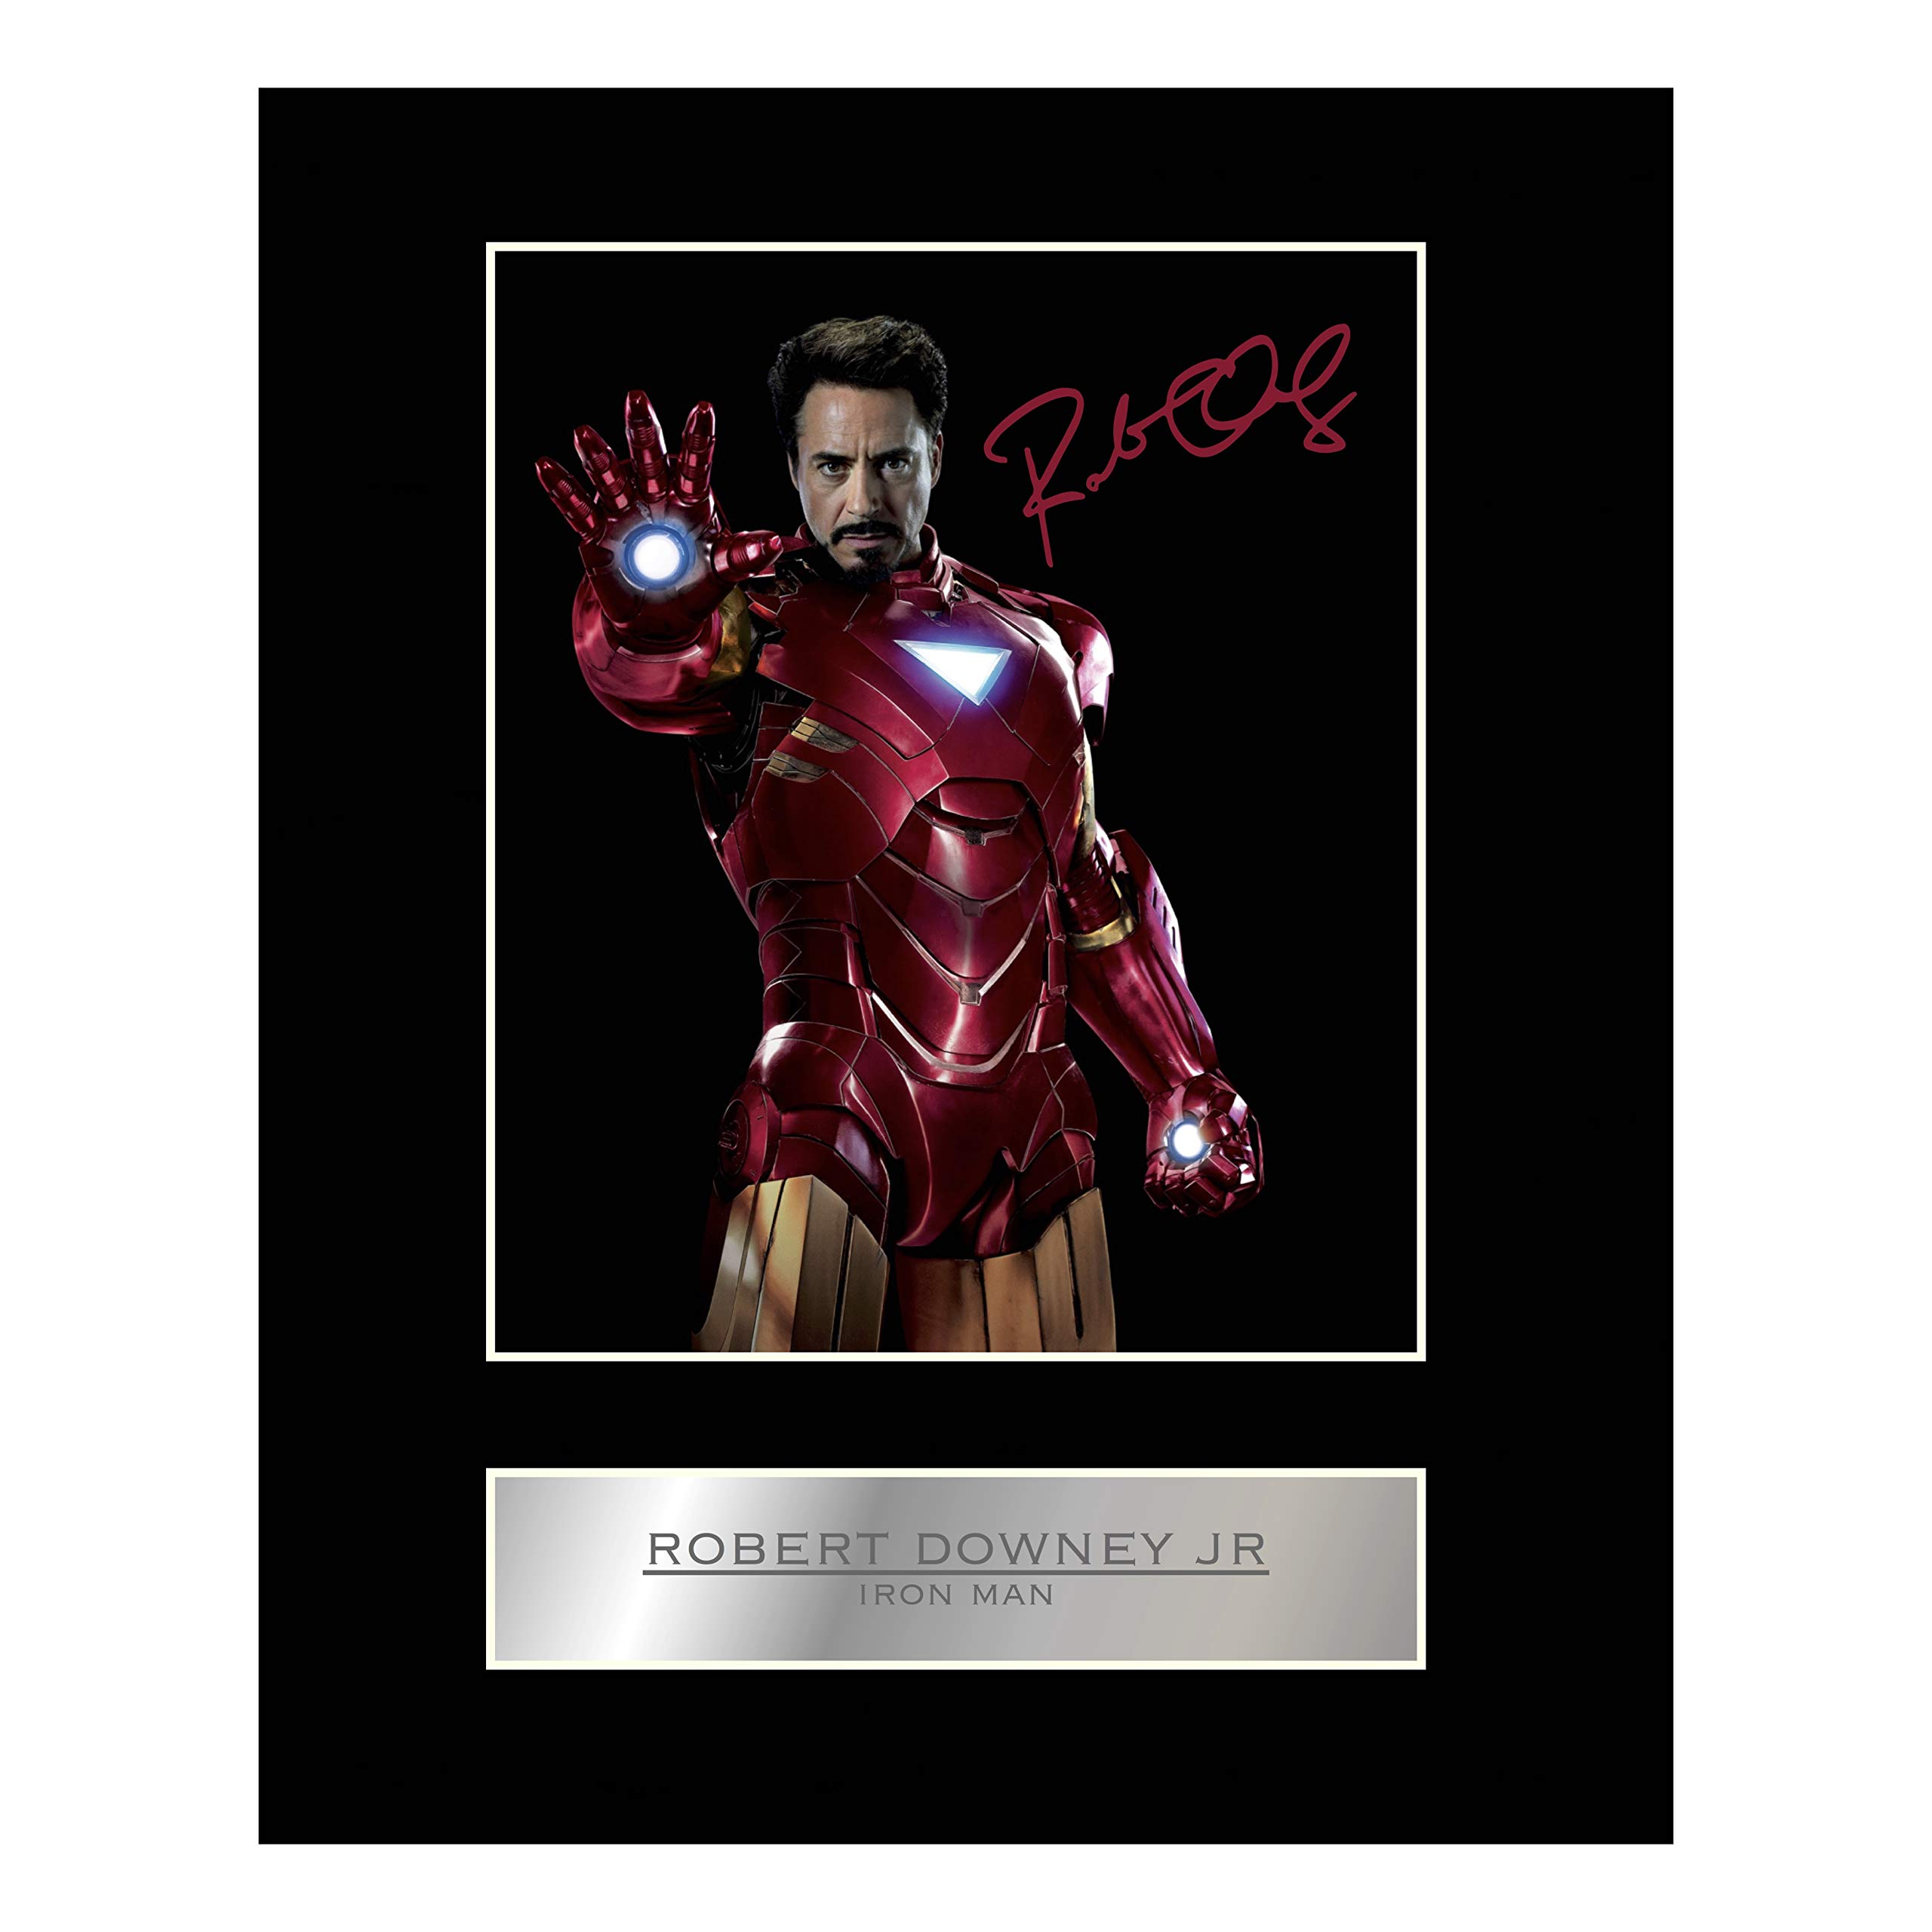 iconic pic Scarlett Johansson Signed Mounted Photo Display #2 Black Widow Autographed Gift Picture Print